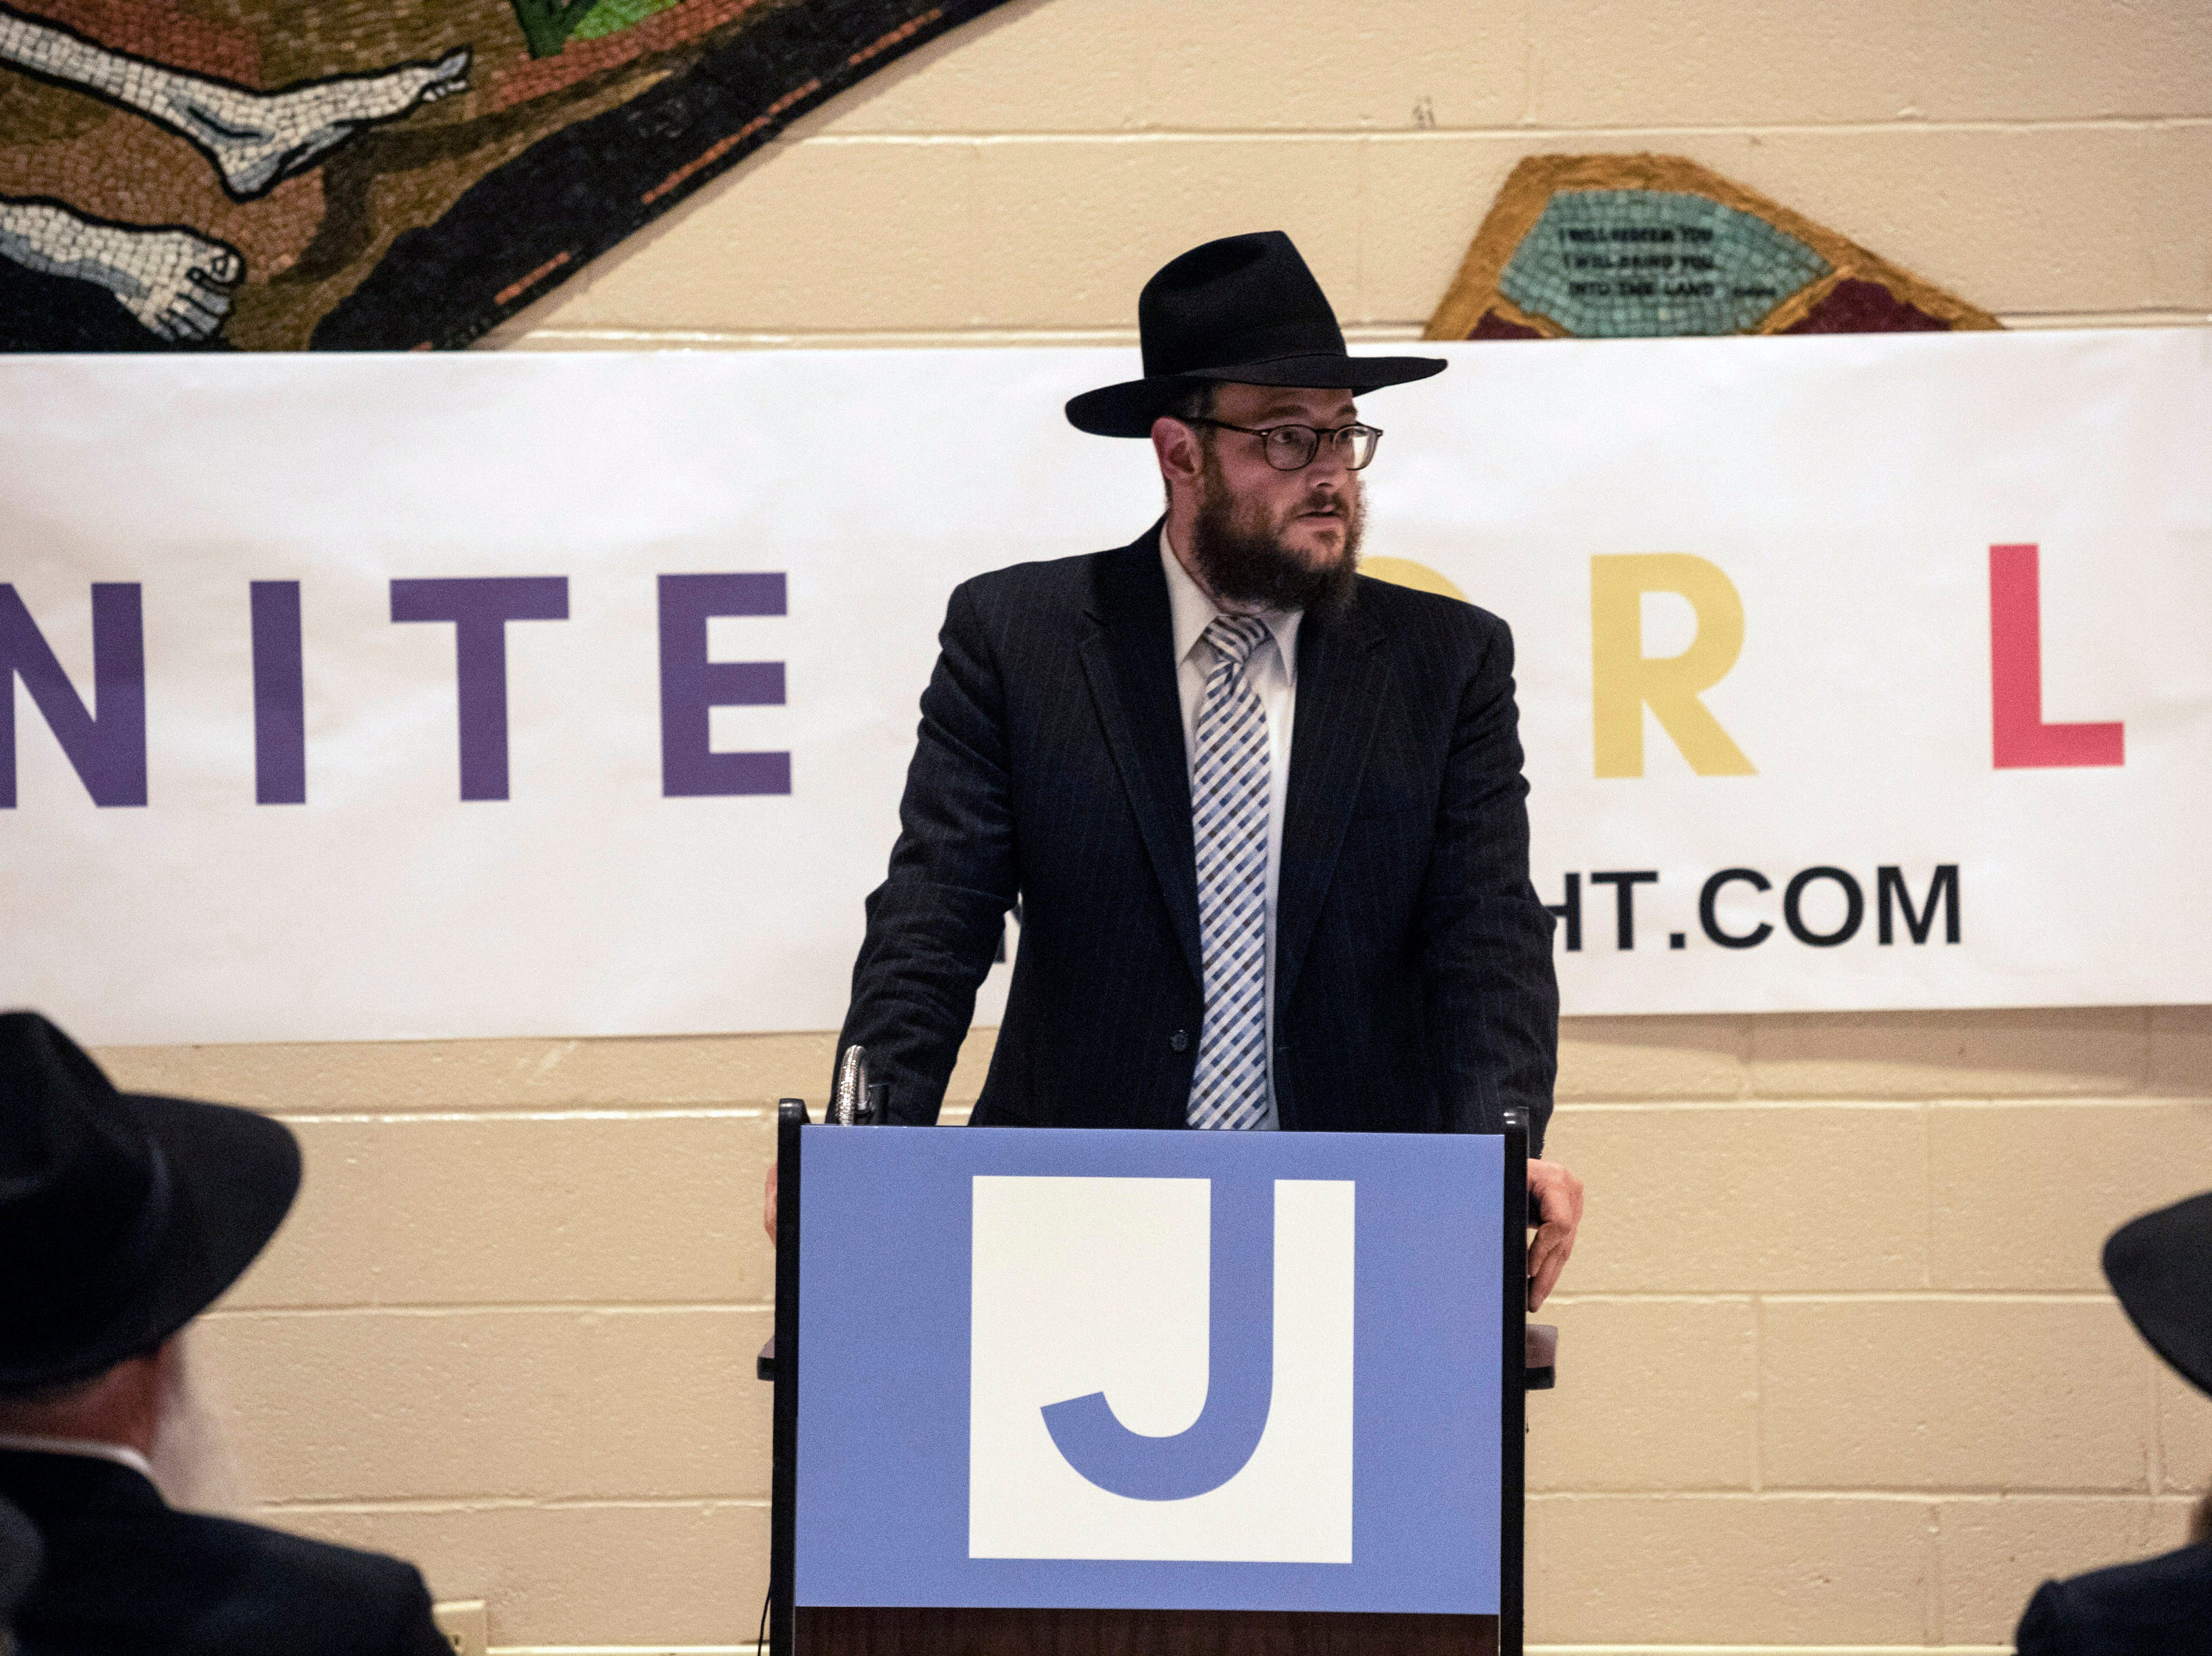 Rabbi Shmully Litvin welcomed guests to the Jewish Community Center on Tuesday night for a Unite For Light prayer service. April 30, 2019